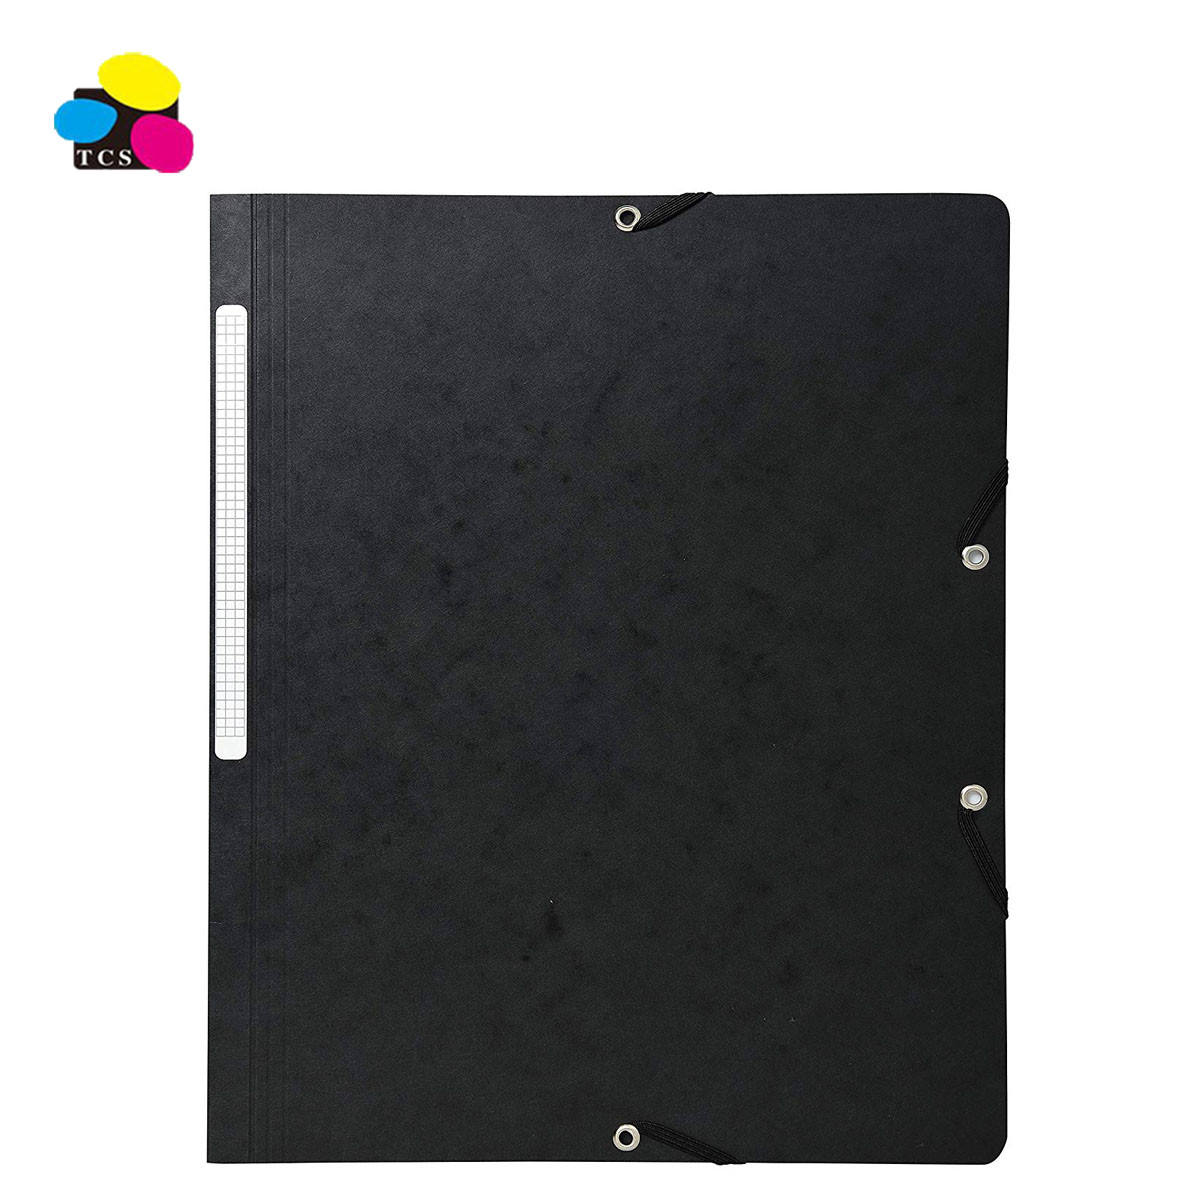 Factory High Quality Good Design 350G Pressboard Holding 200 Sheets Elastic Bands Folders Without Flap For Office Document